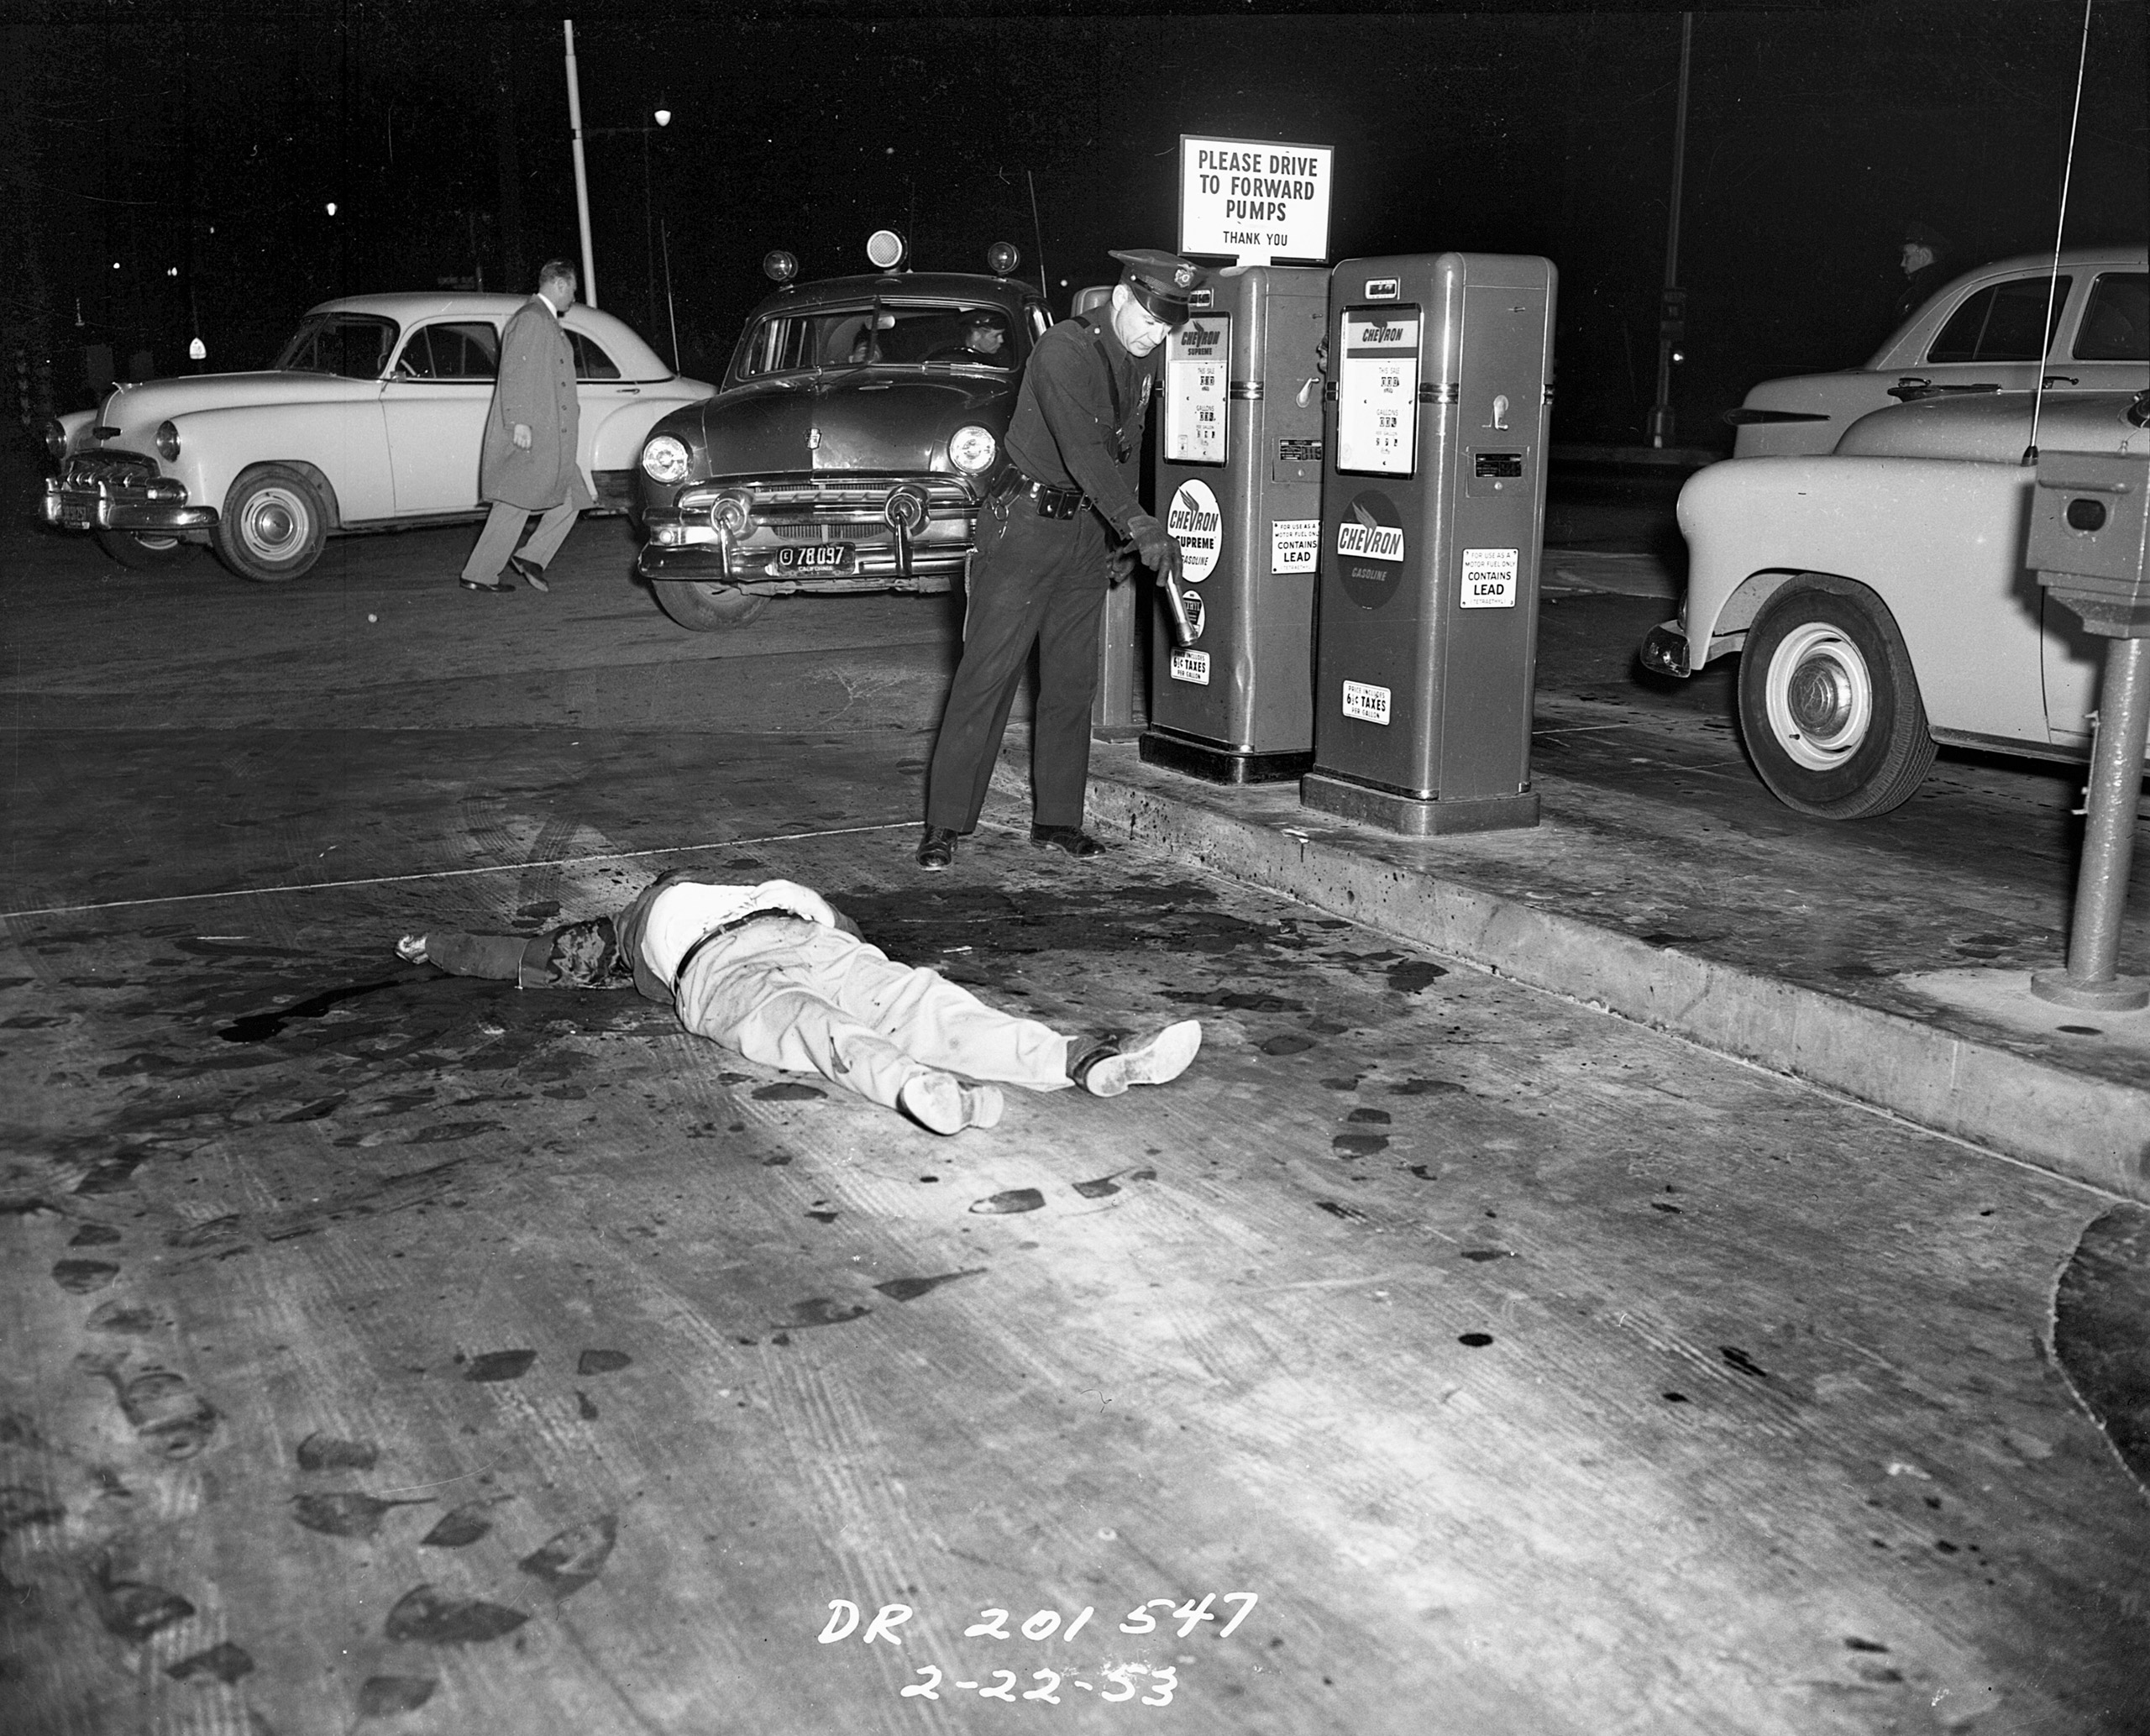 Two drinking buddies had a drunken brawl and the Scotchman beat the Dutchman to death at a gas station on Foothill Boulevard on February 22, 1953.